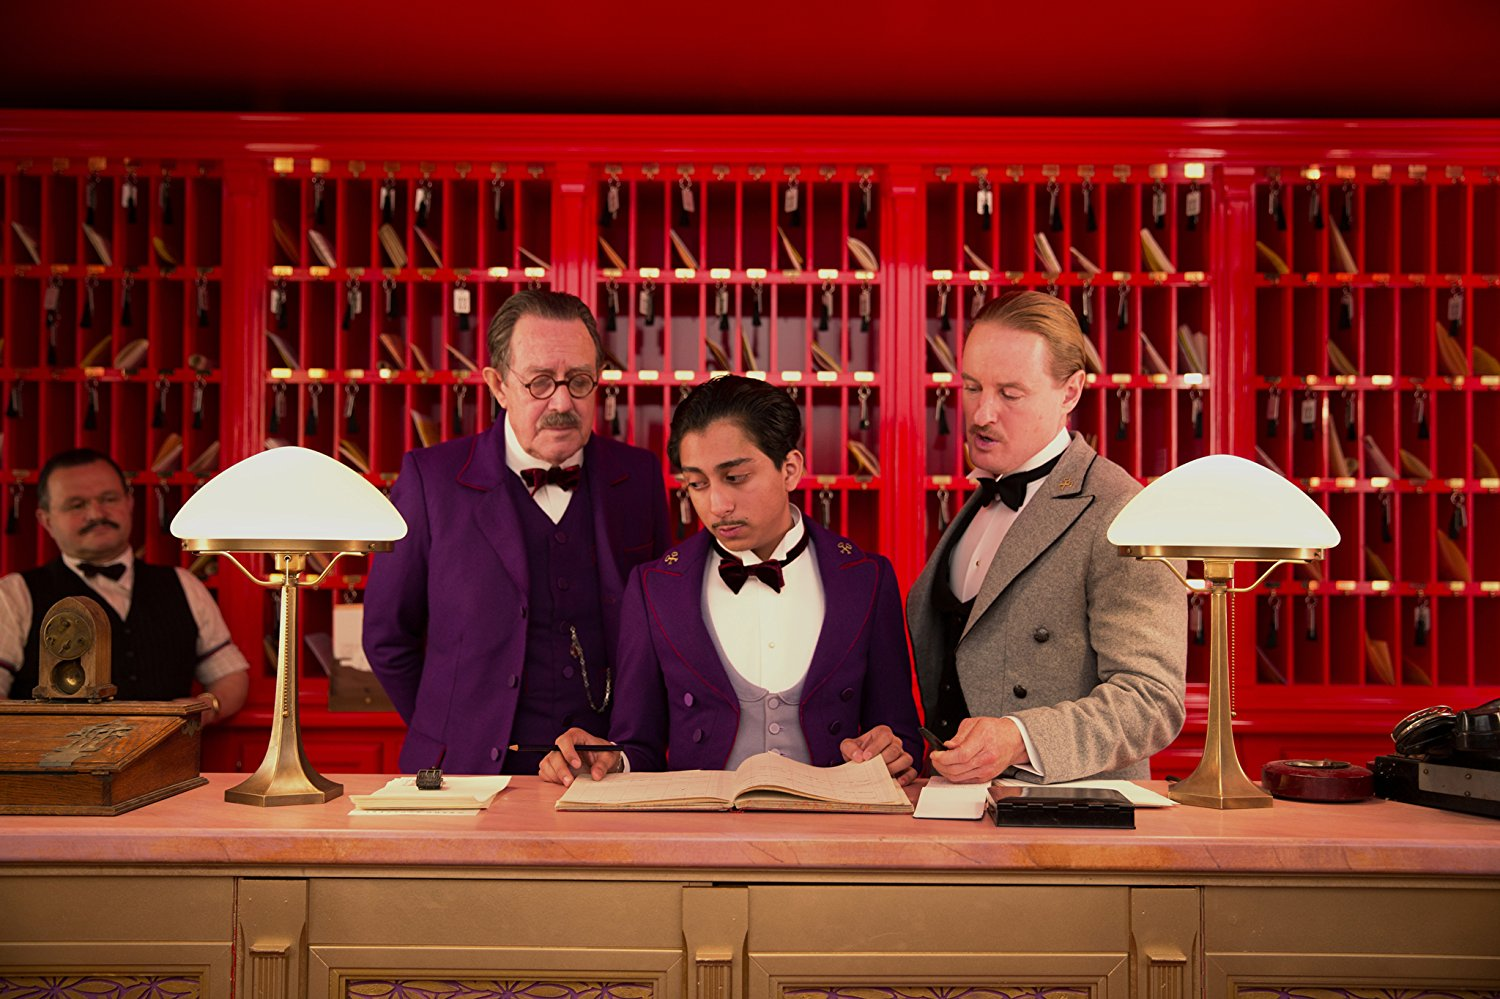 Cinema & Pop Culture : Du spectateur au Consommateur : The Grand Budapest Hotel